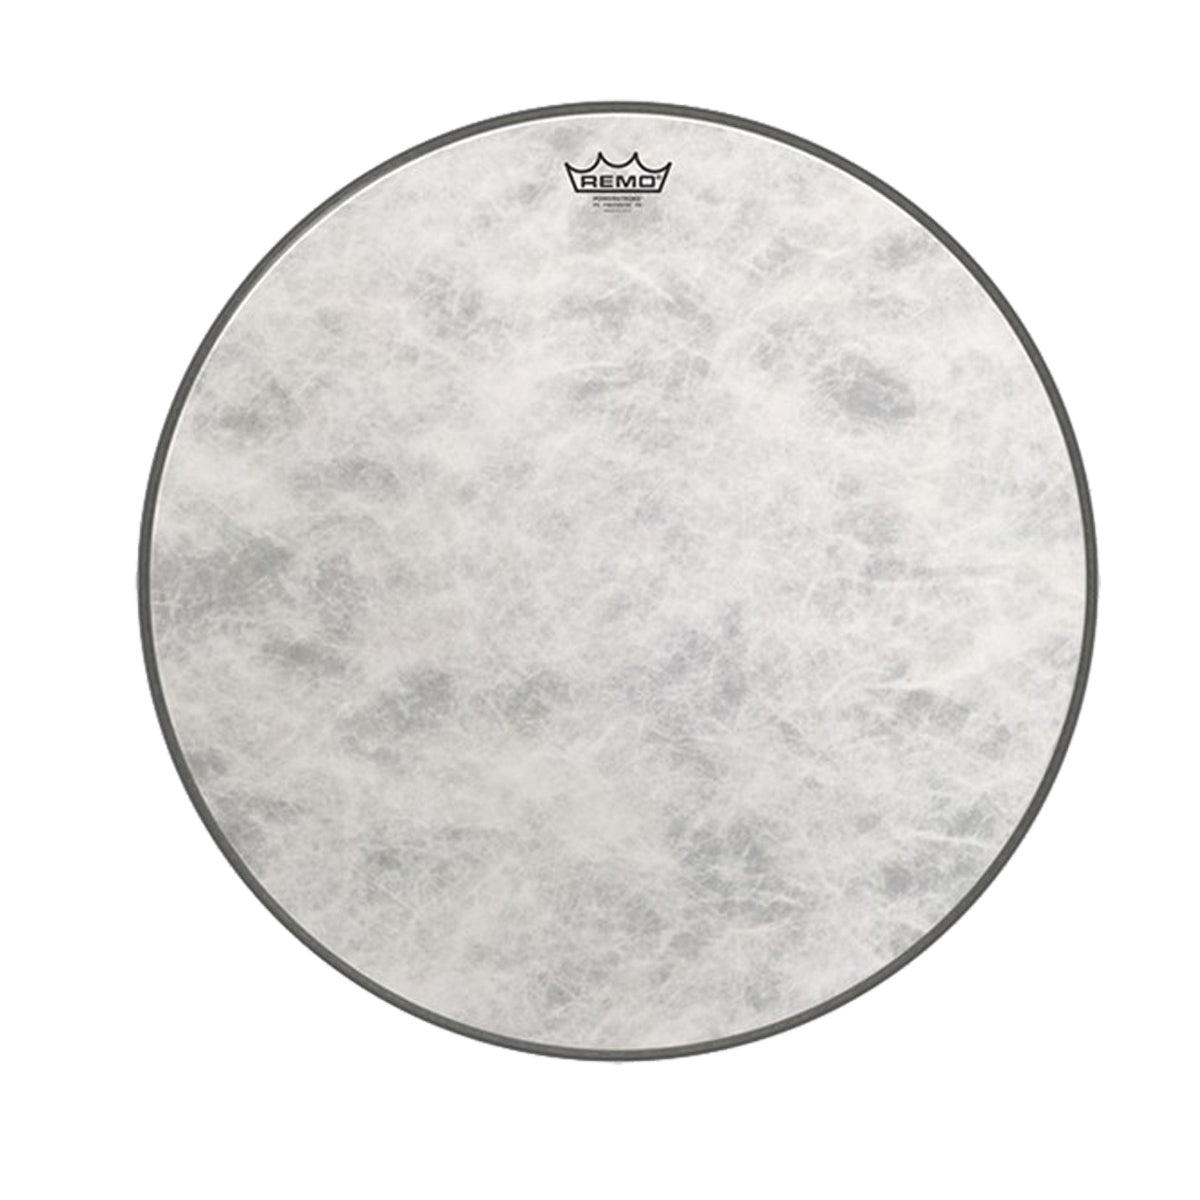 Remo P4-1318-C2 18inch Powerstroke 4 Clear Bass Drum Head Skin